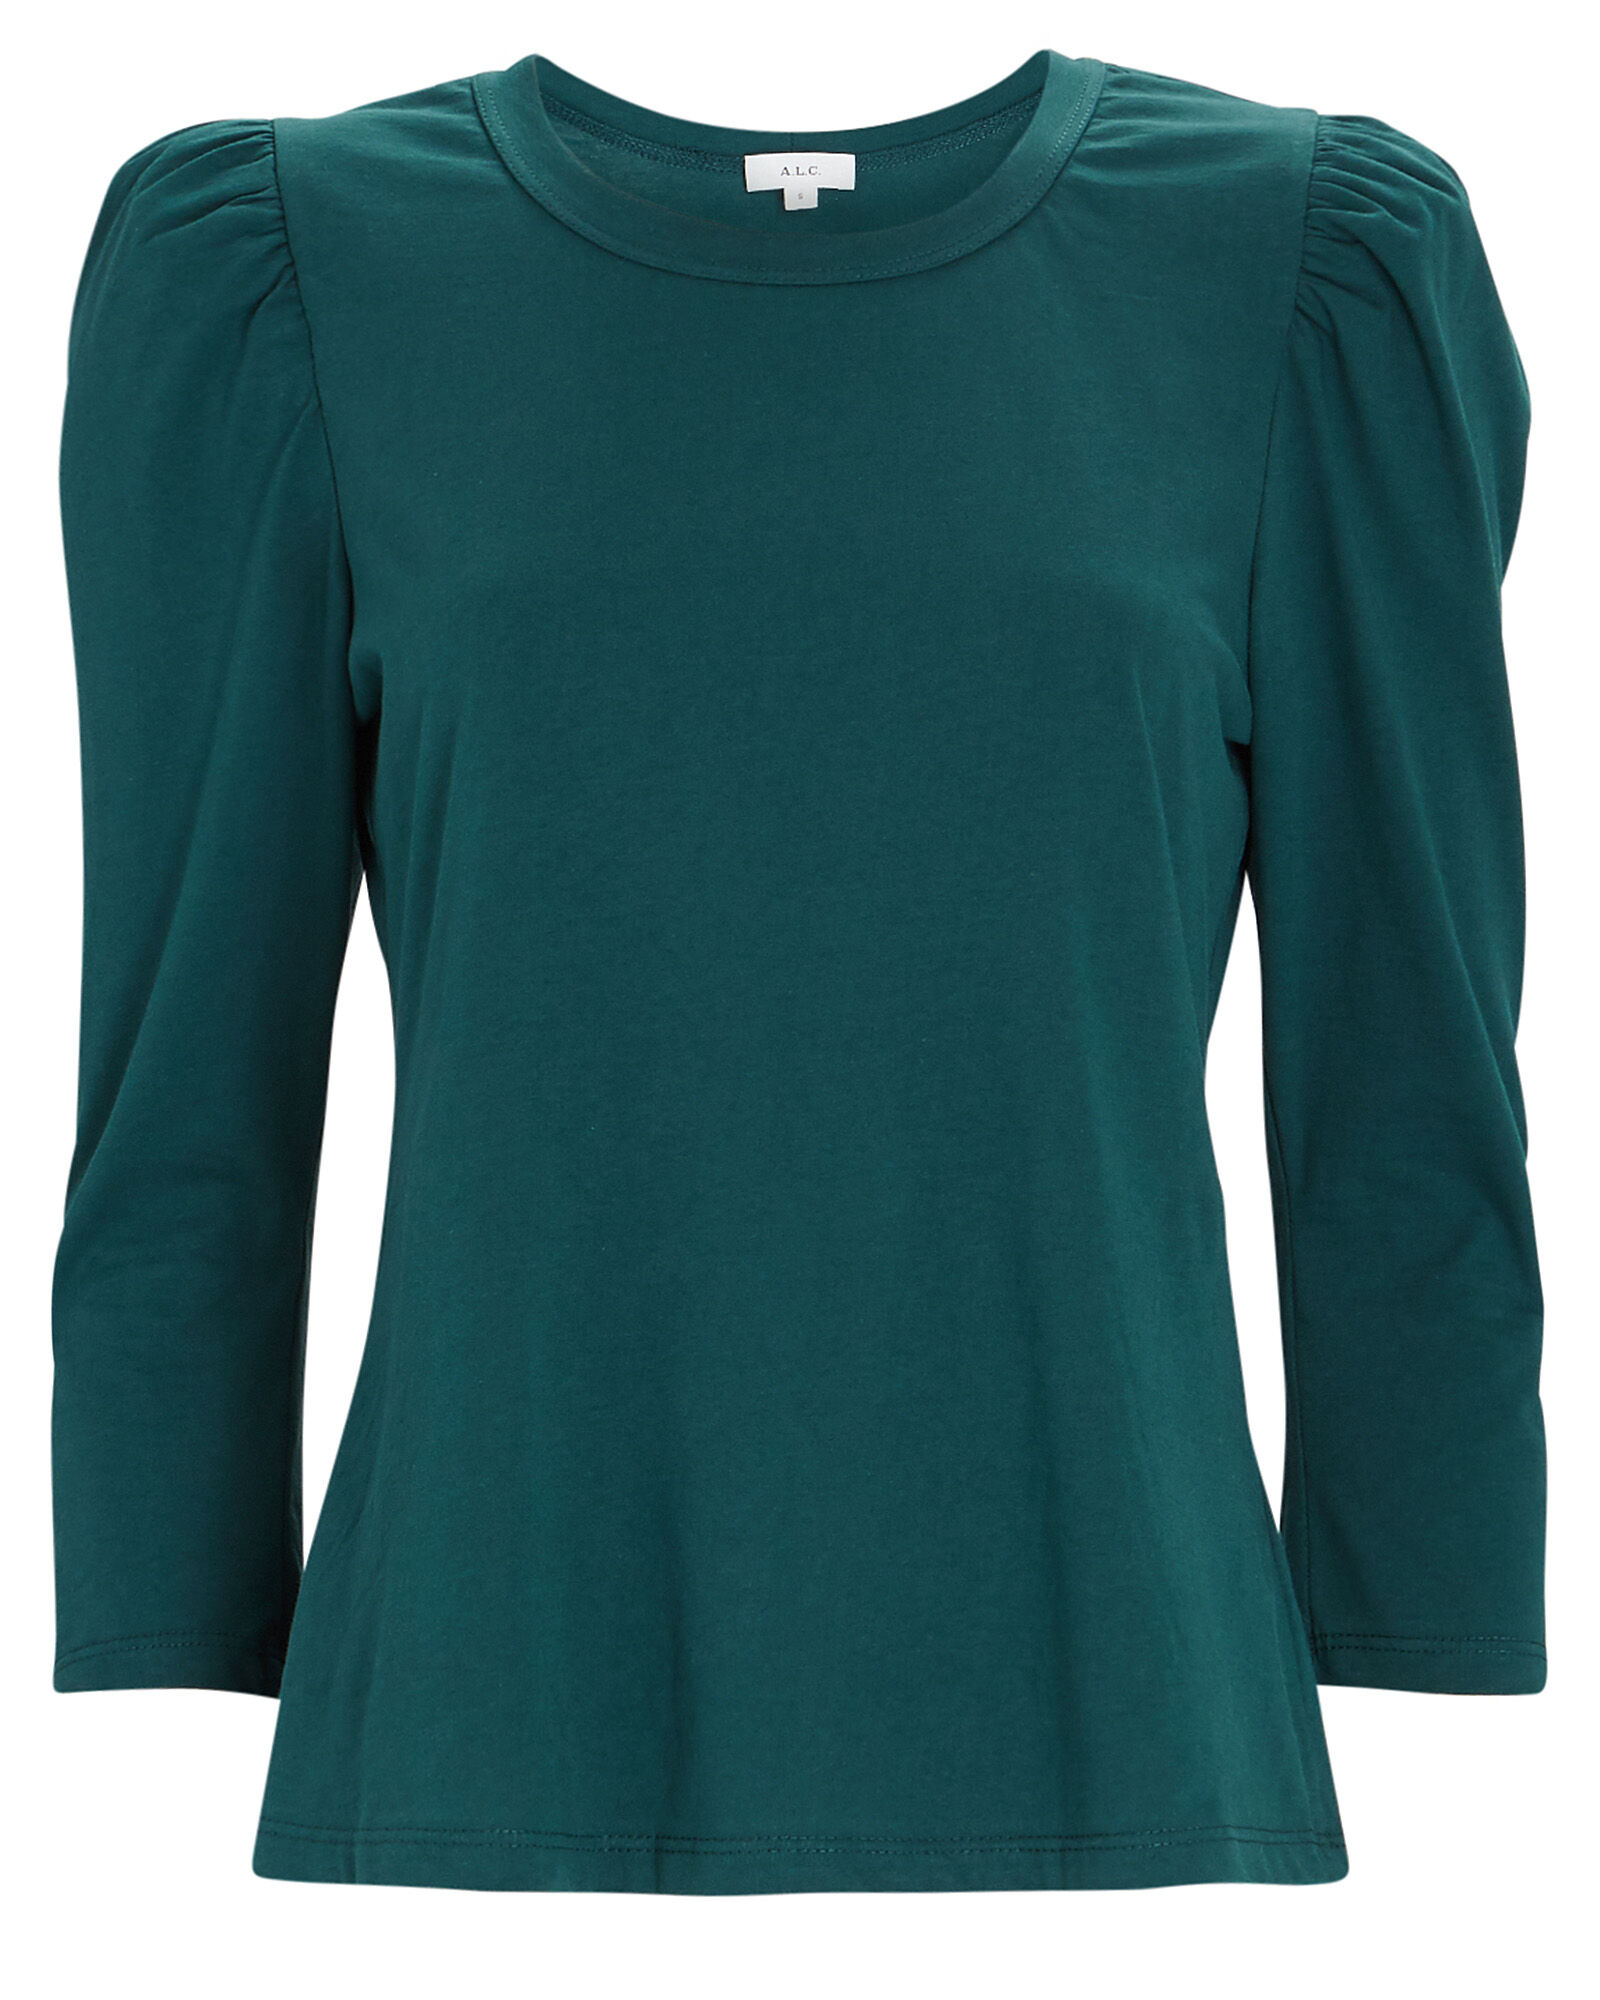 Karlie Puff Sleeve Cotton T-Shirt, GREEN, hi-res